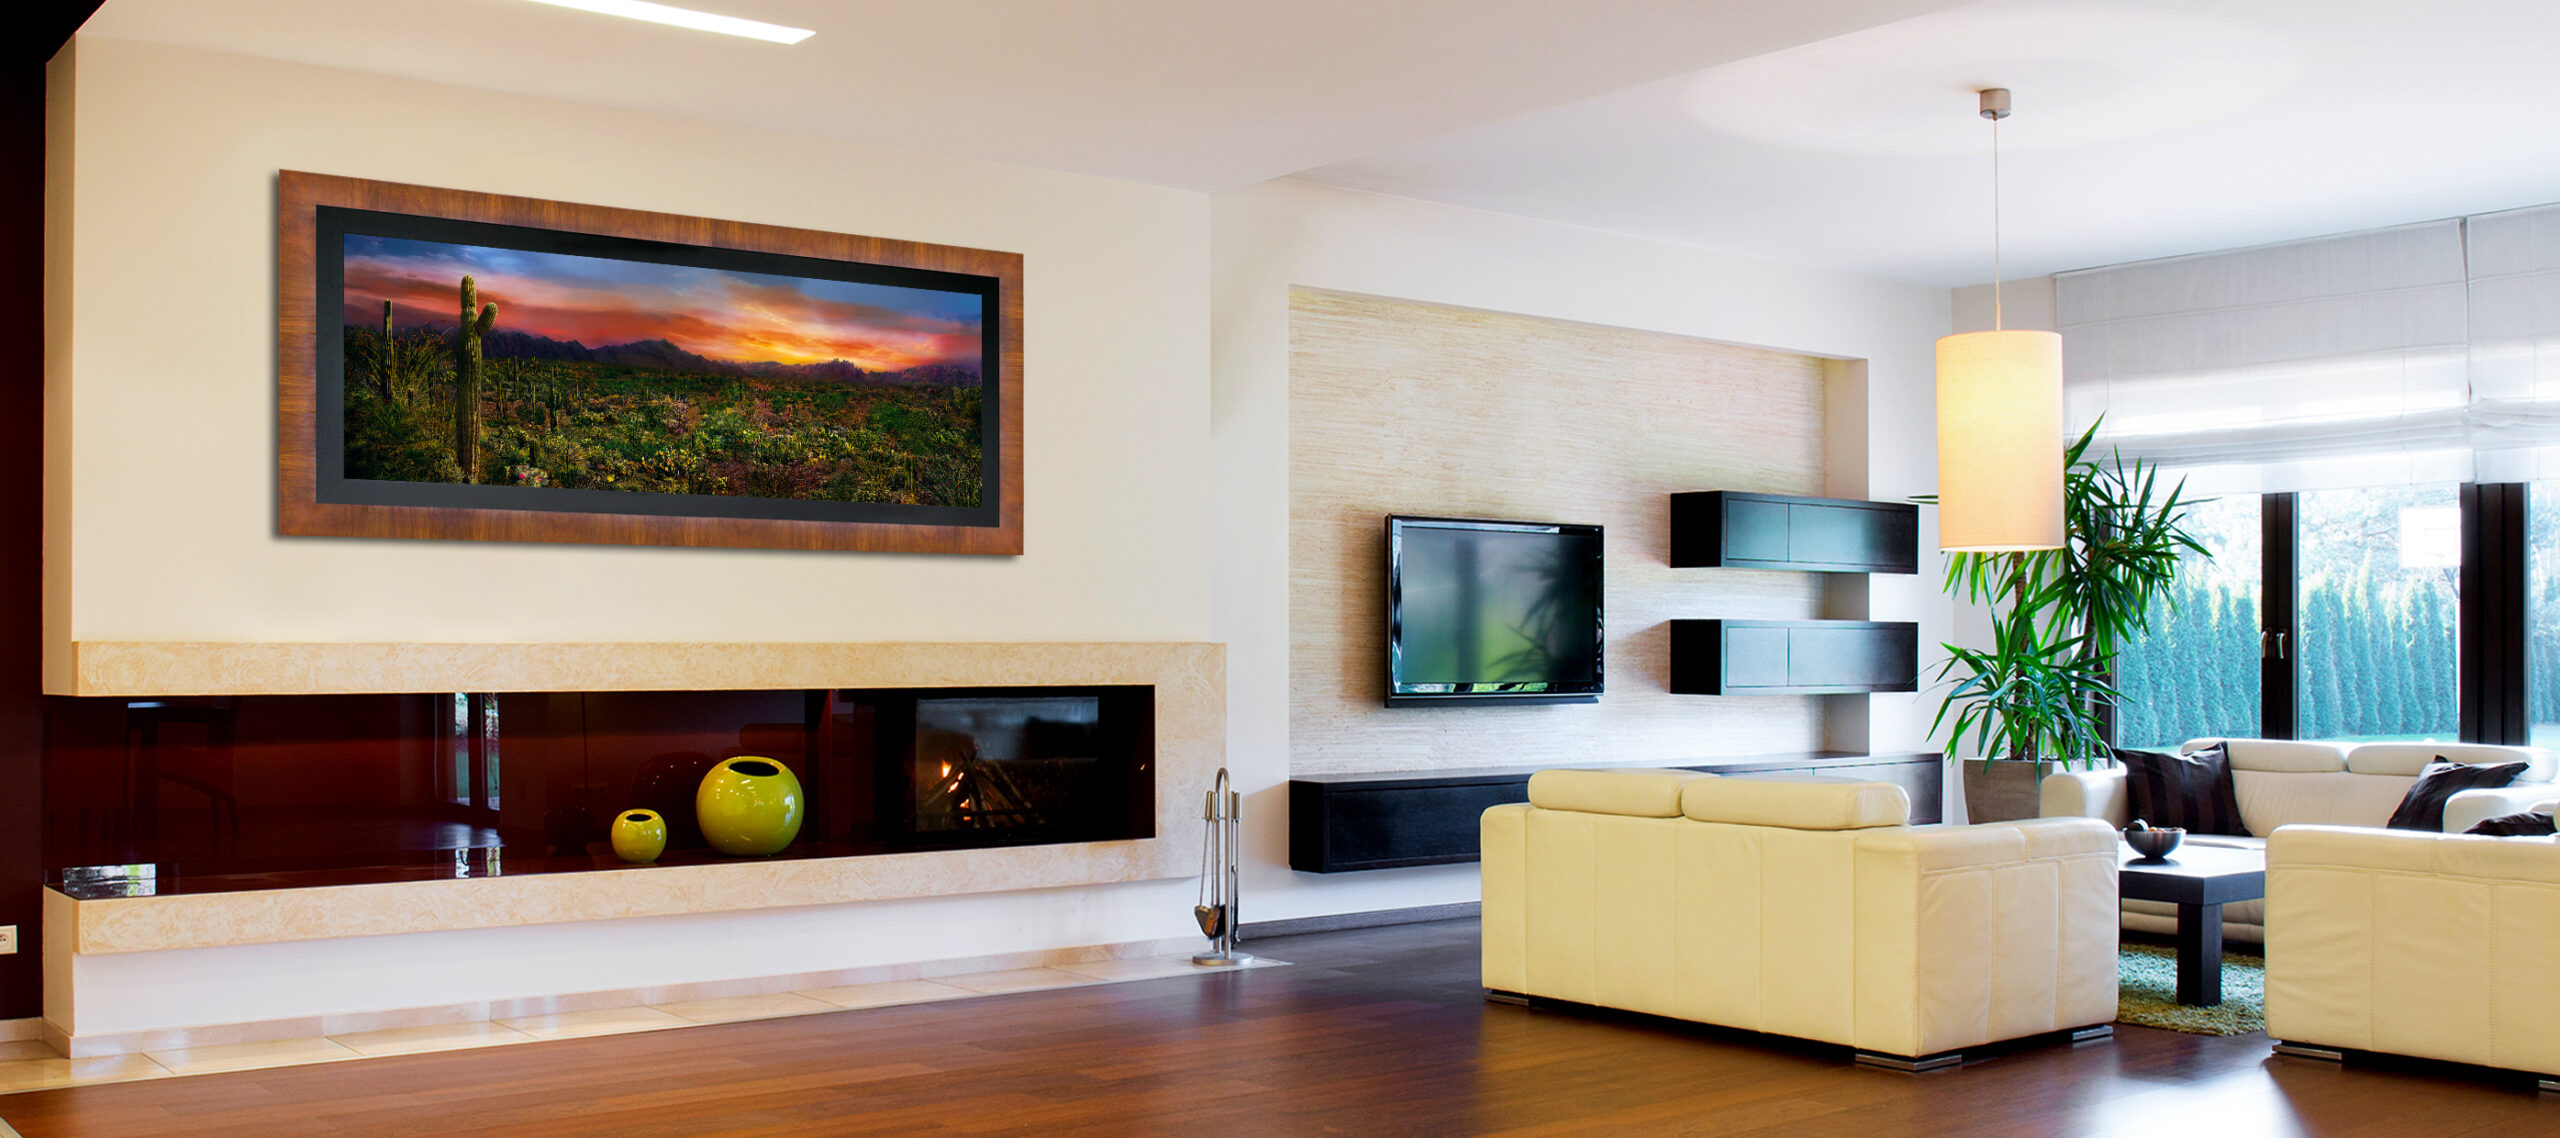 Interior,Of,Modern,Area,In,Spacious,House